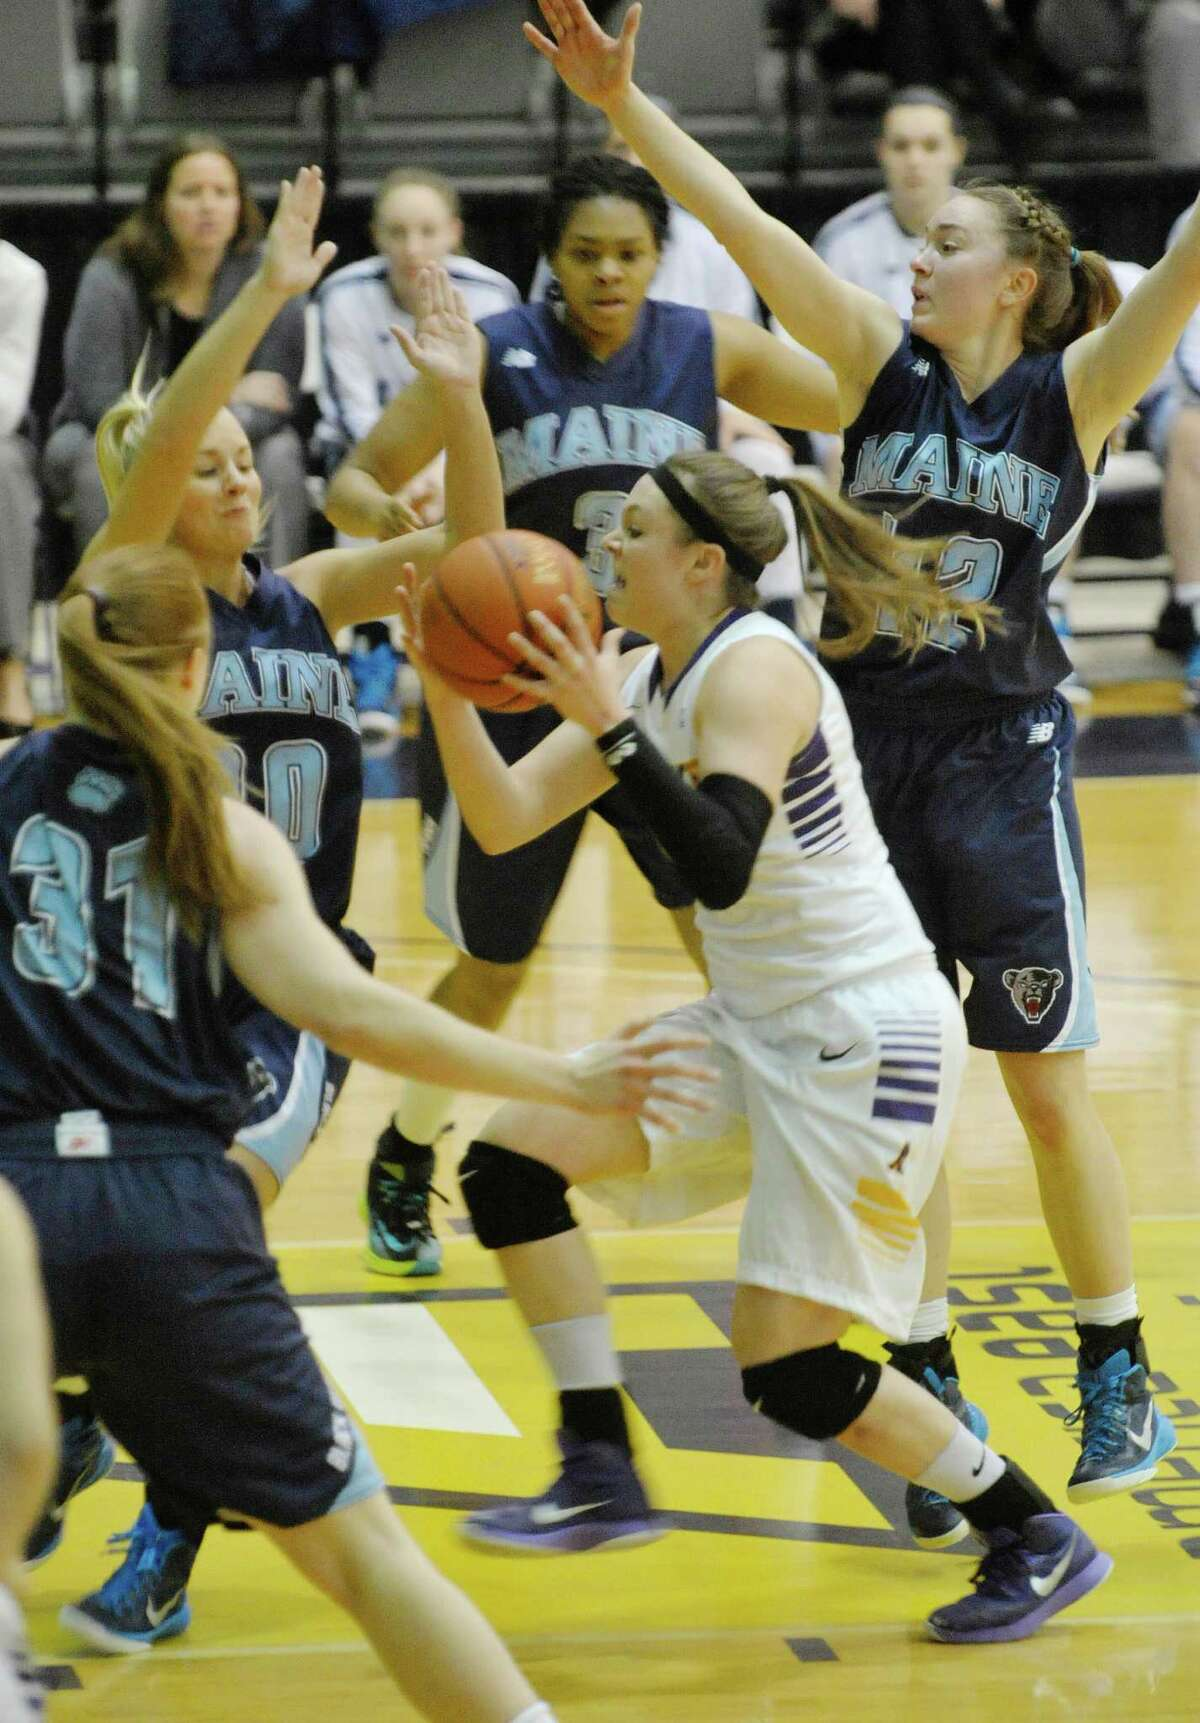 Sarah Royals of UAlbany drives towards the basket during their game against Maine on Sunday, Feb. 1, 2015, in Albany, N.Y. (Paul Buckowski / Times Union)